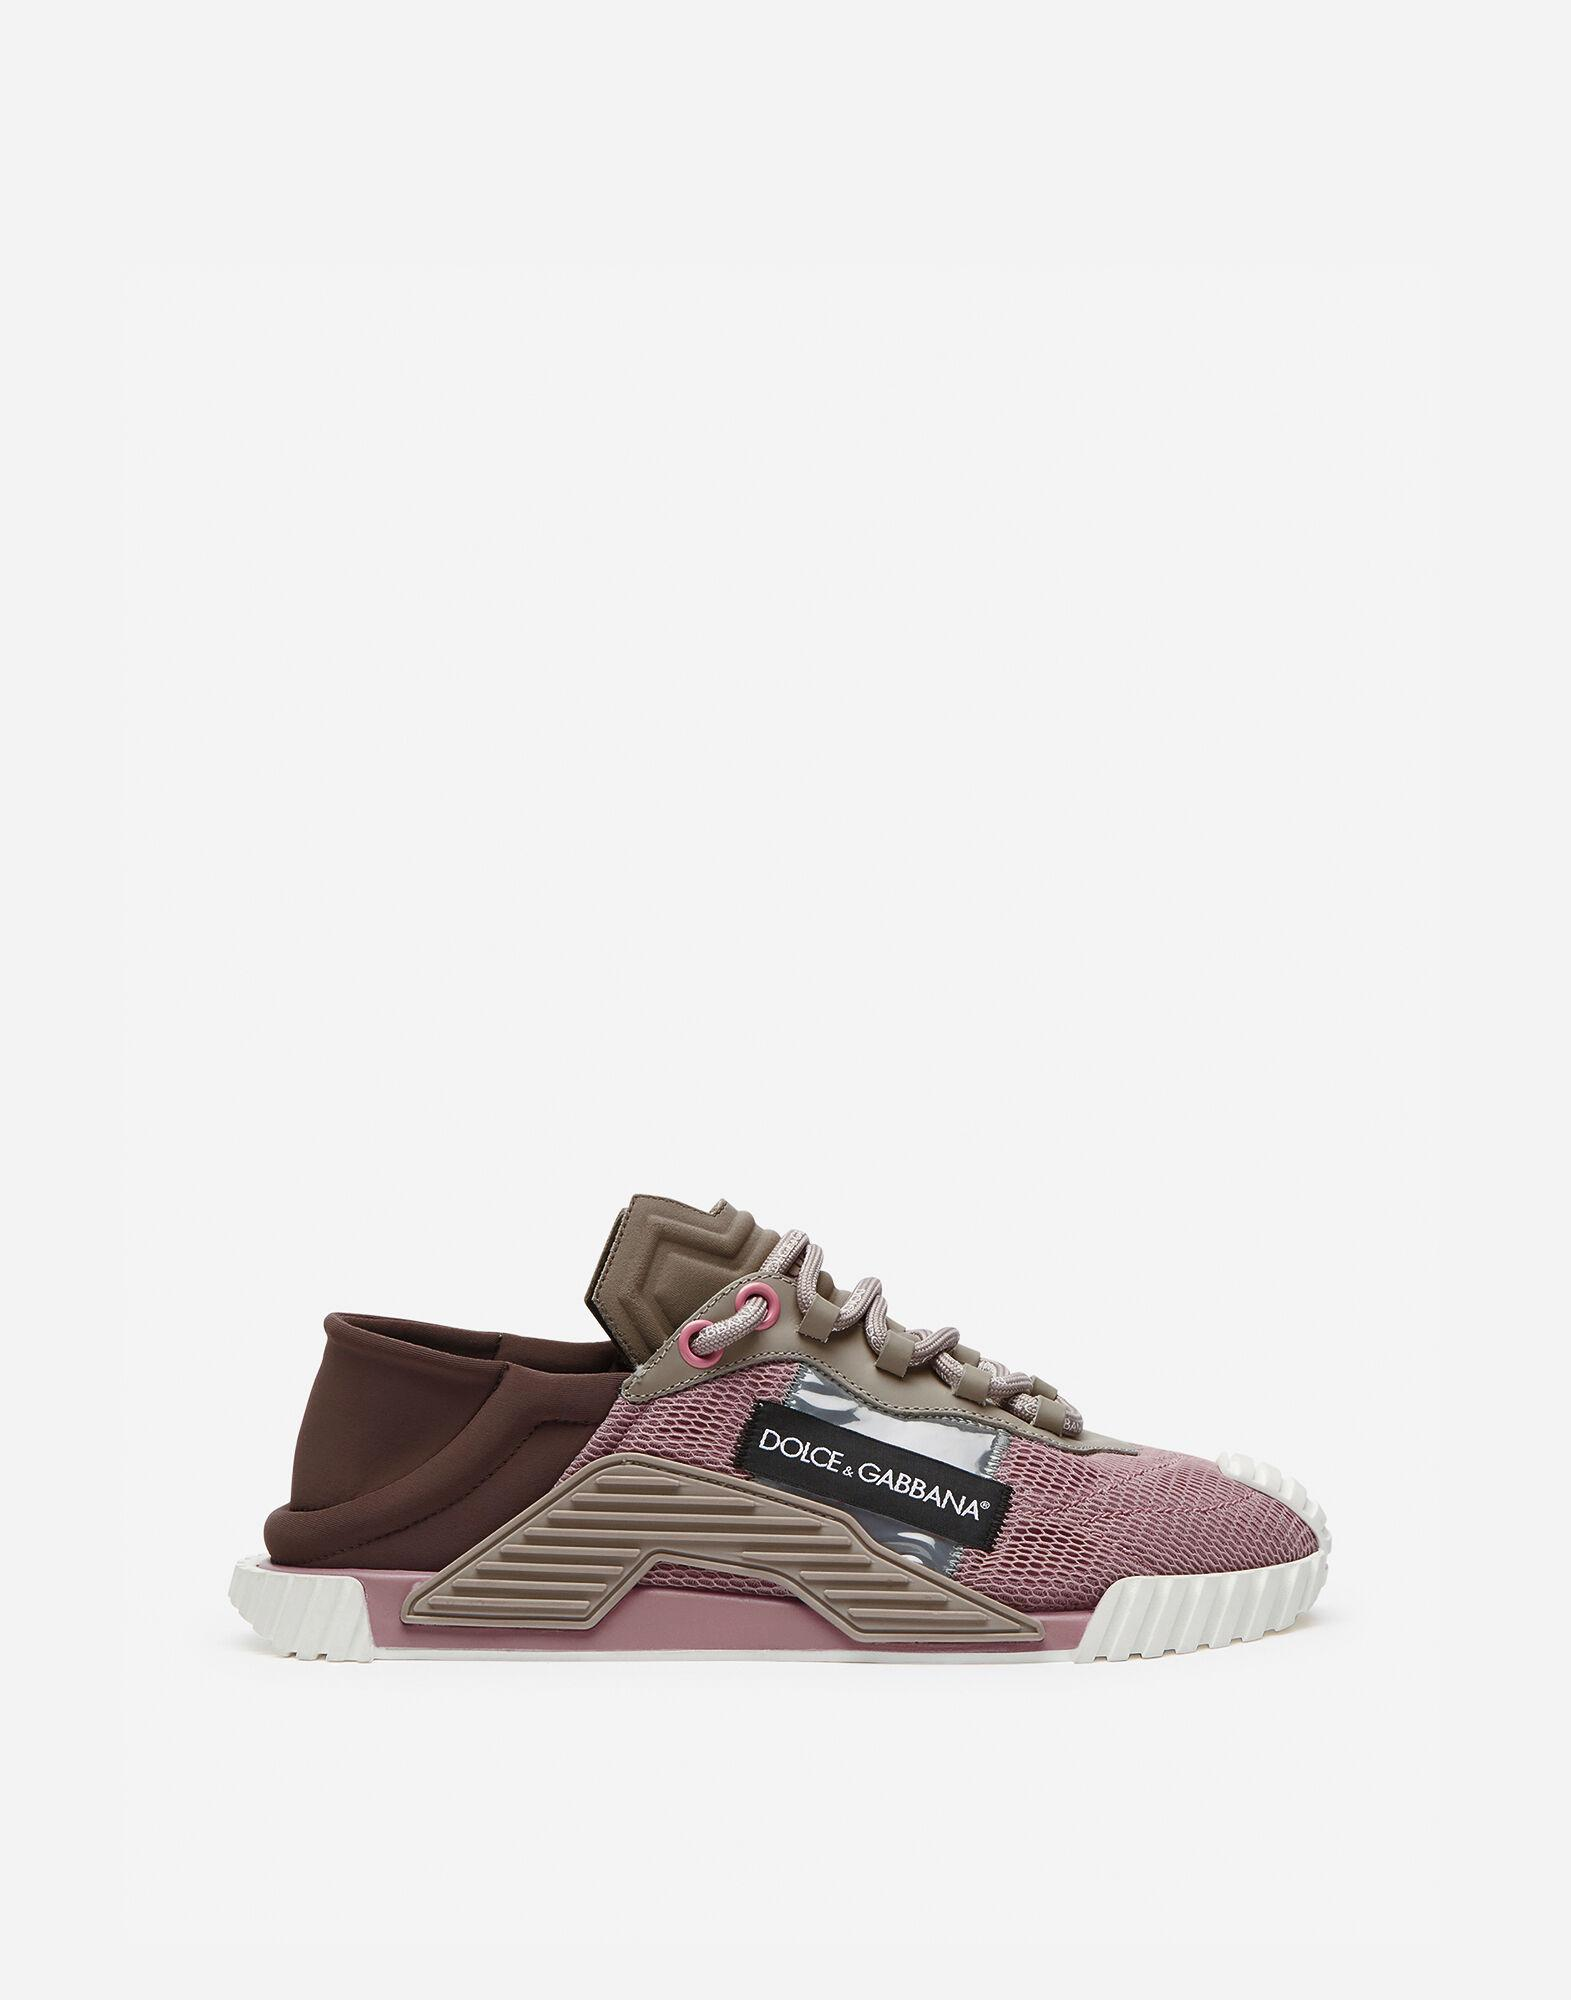 NS1 slip on sneakers in mixed materials 0